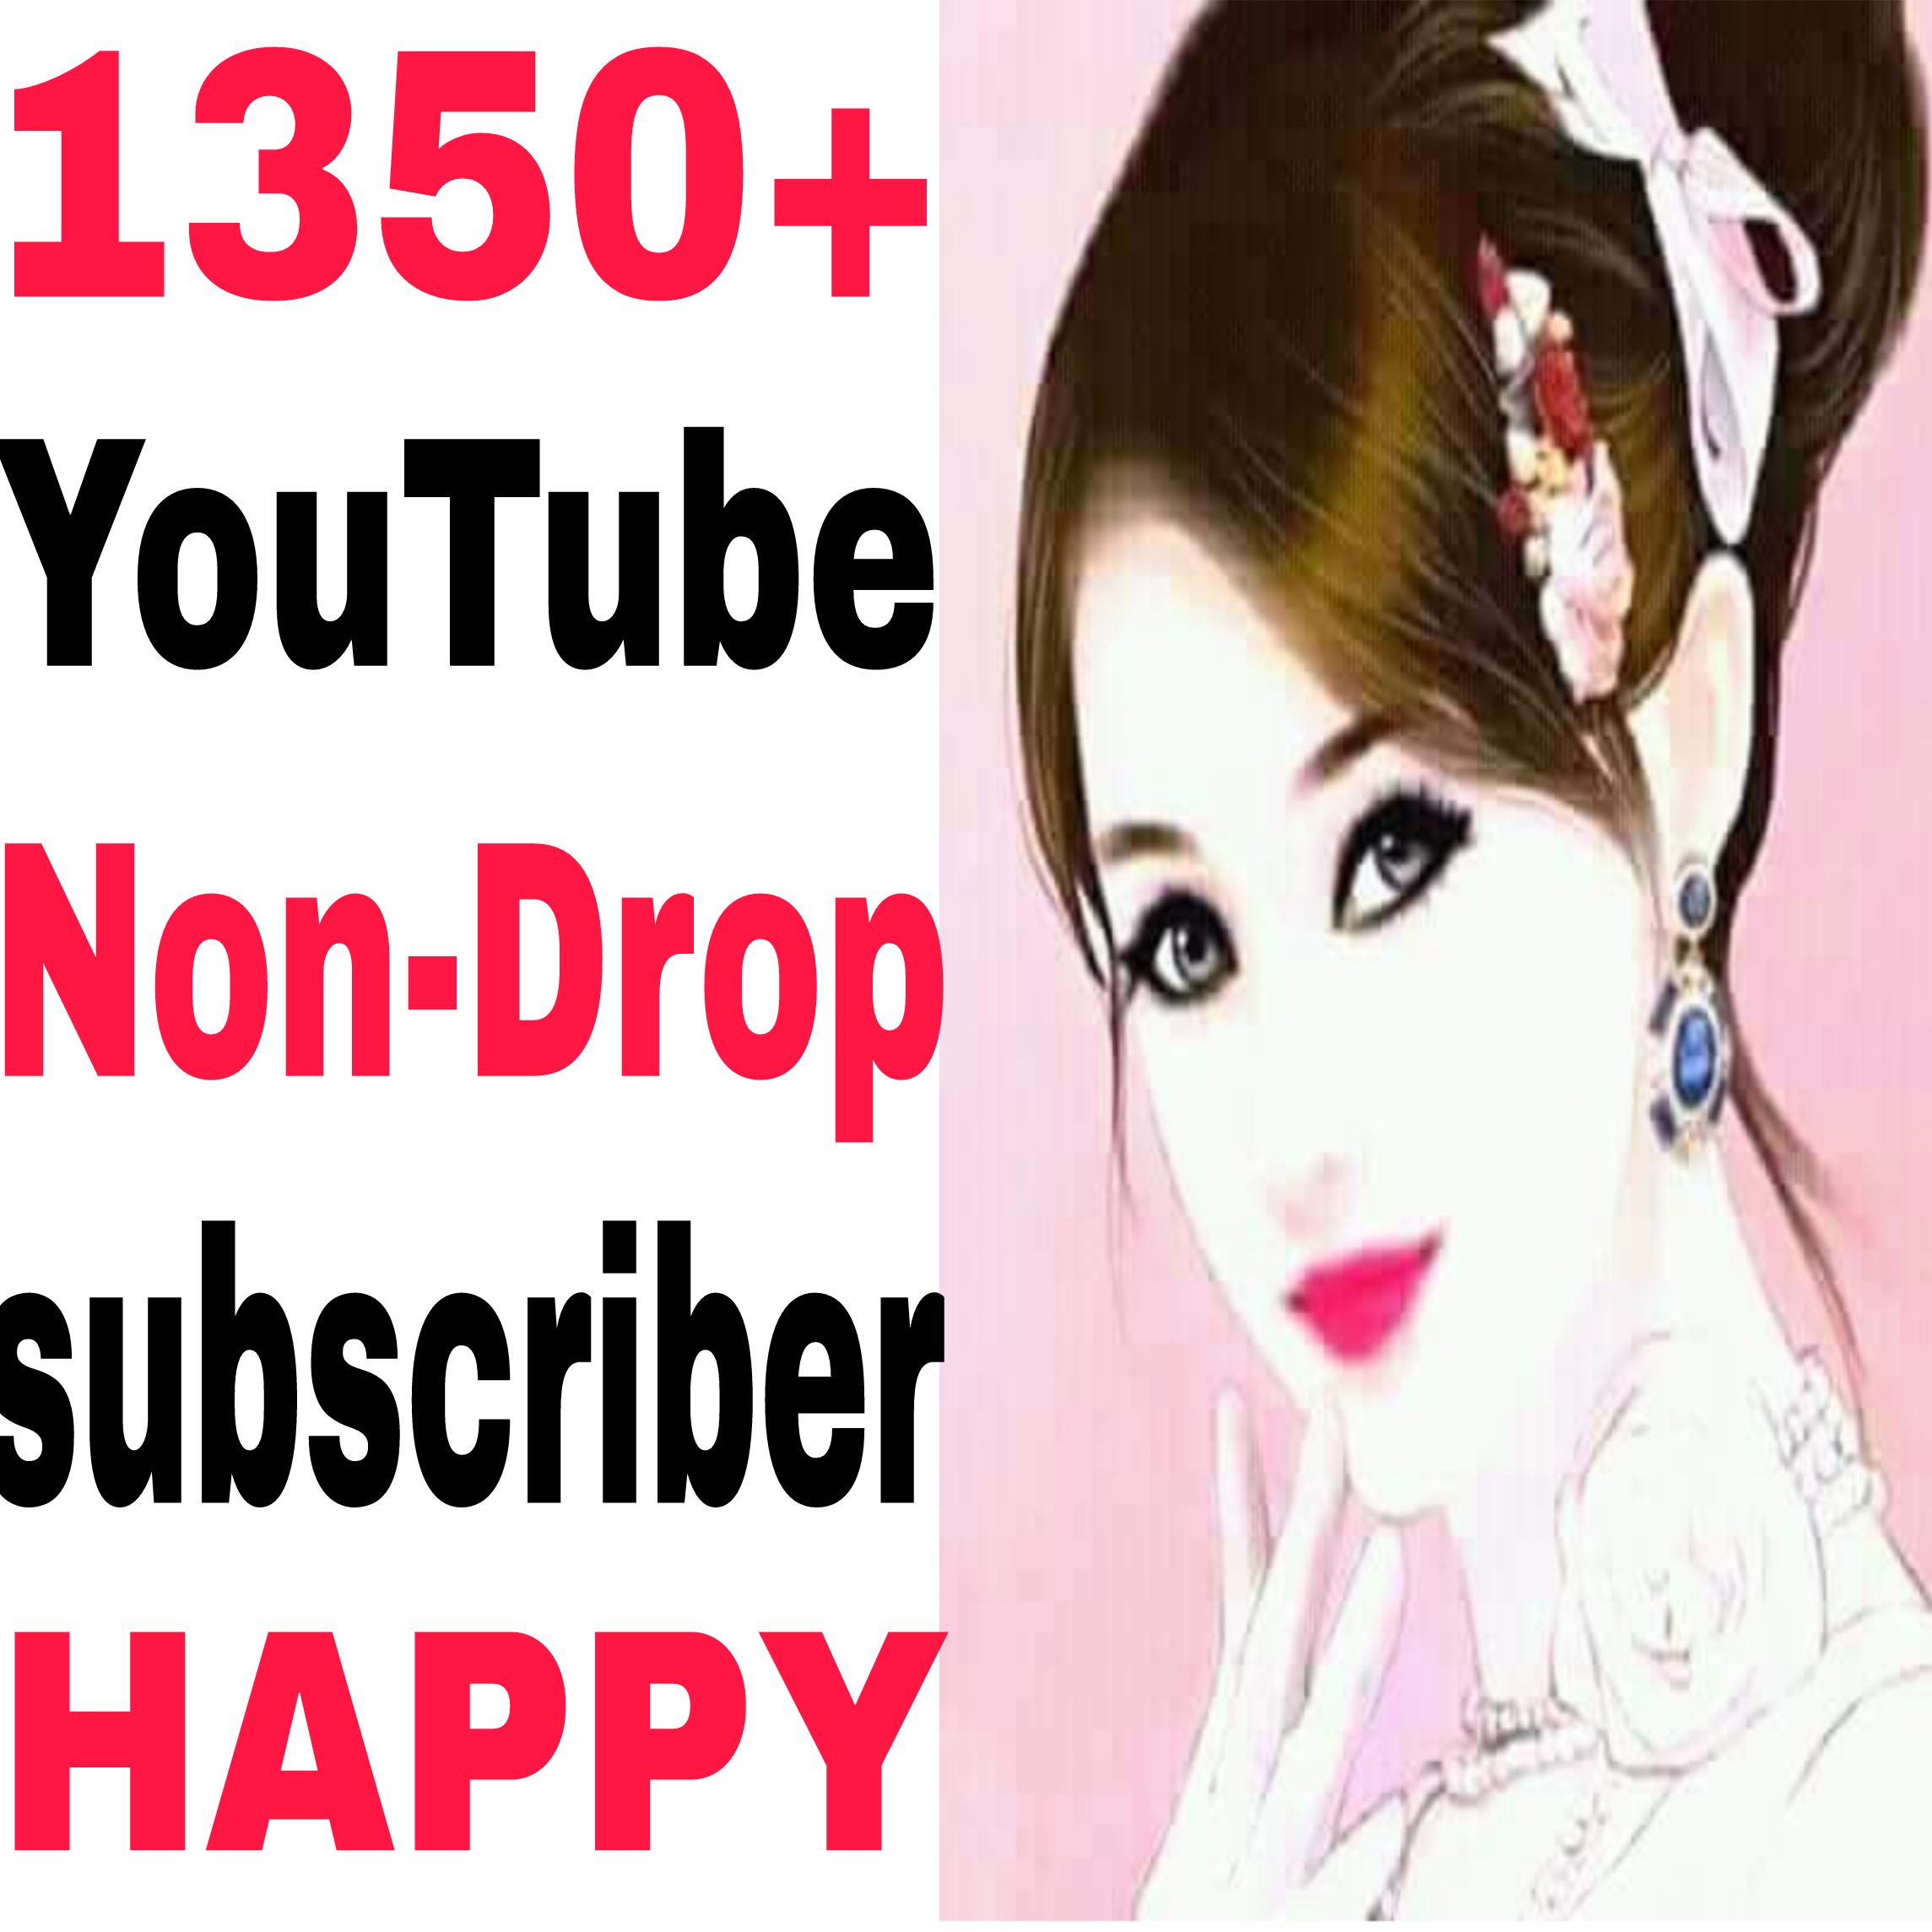 Guaranteed 1350 human work channel Sub-Scriber world wide non drop 30 hours completed